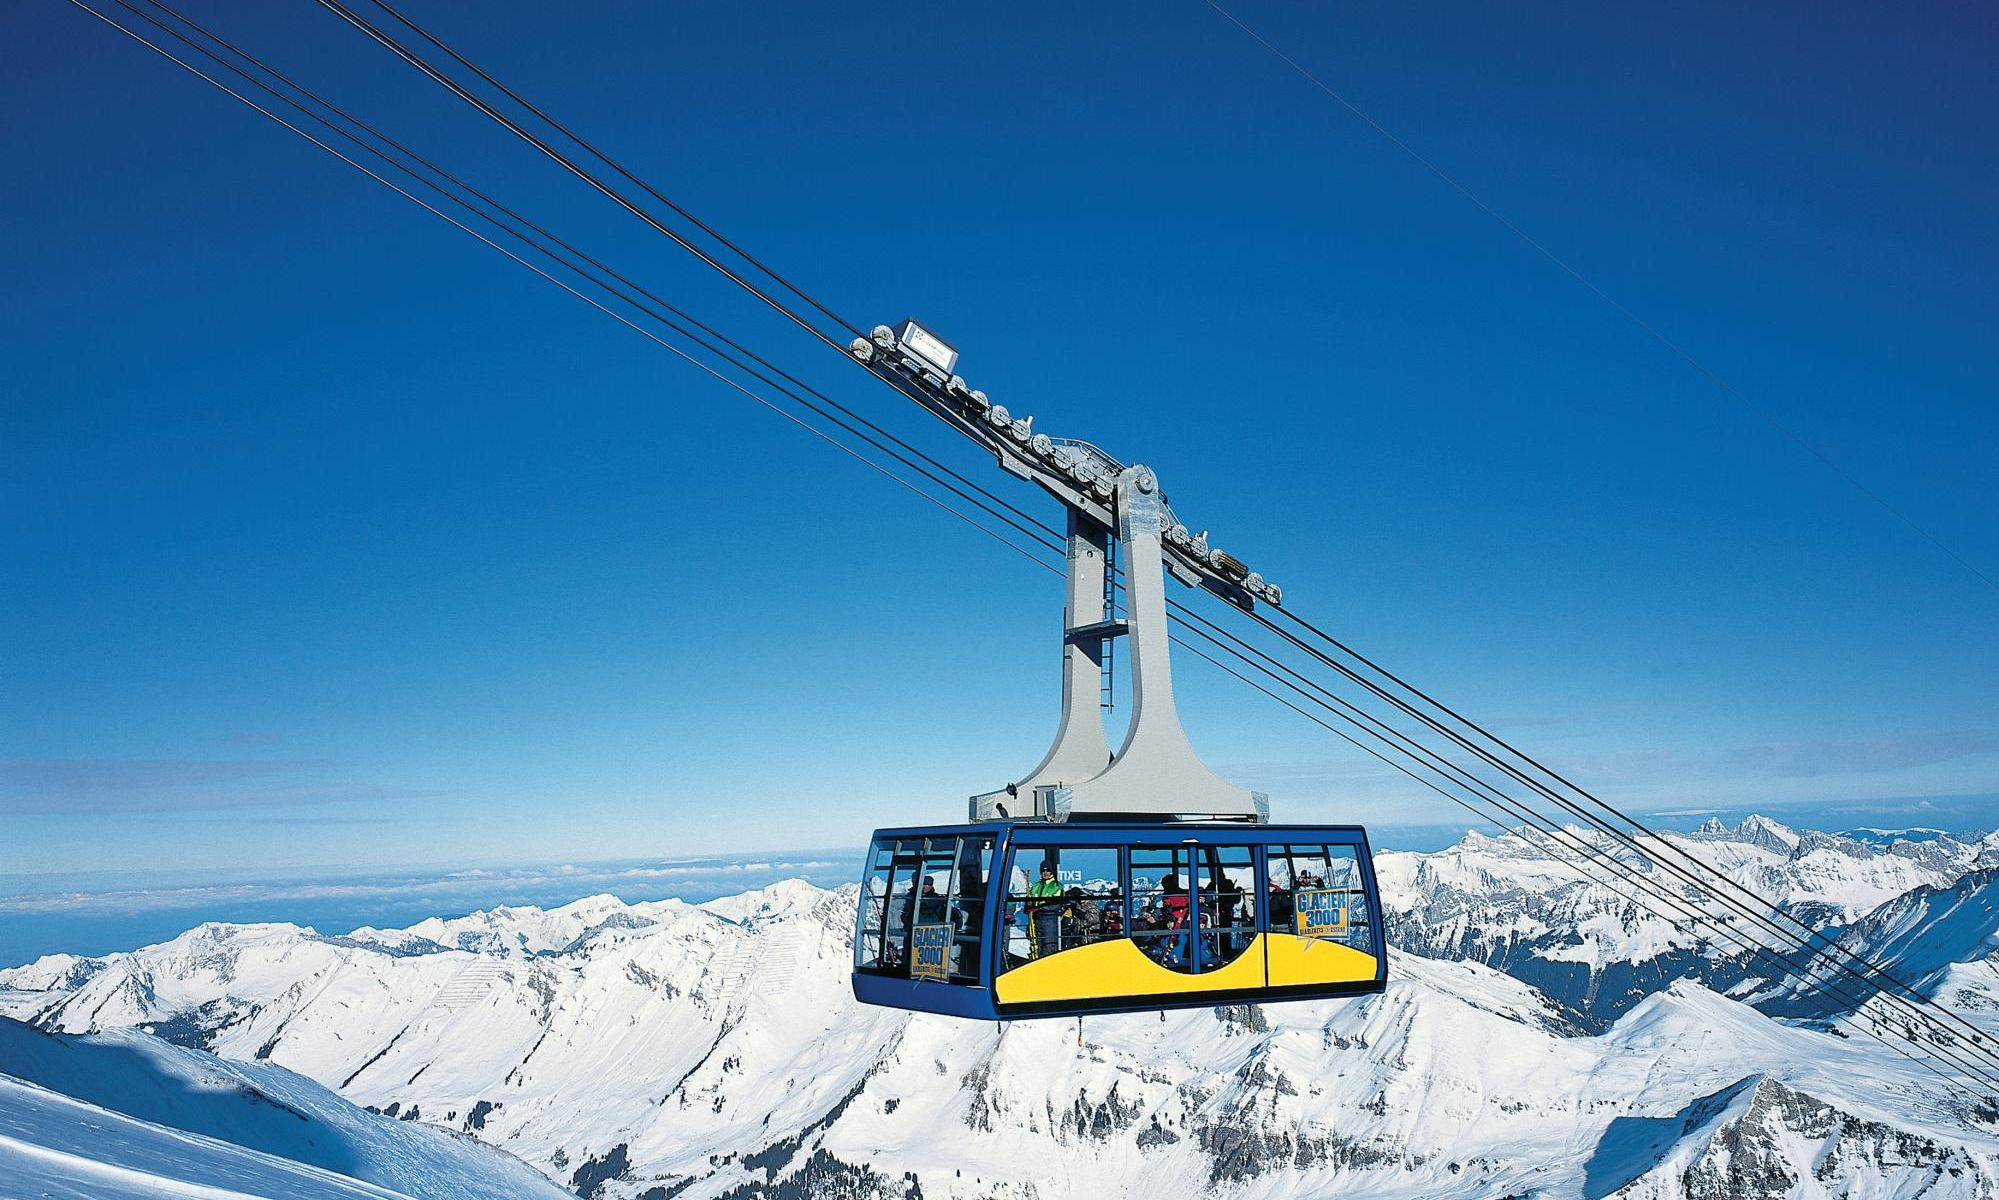 Villars-Gryon-Les Diablerets is one of the resorts in the Magic Pass.